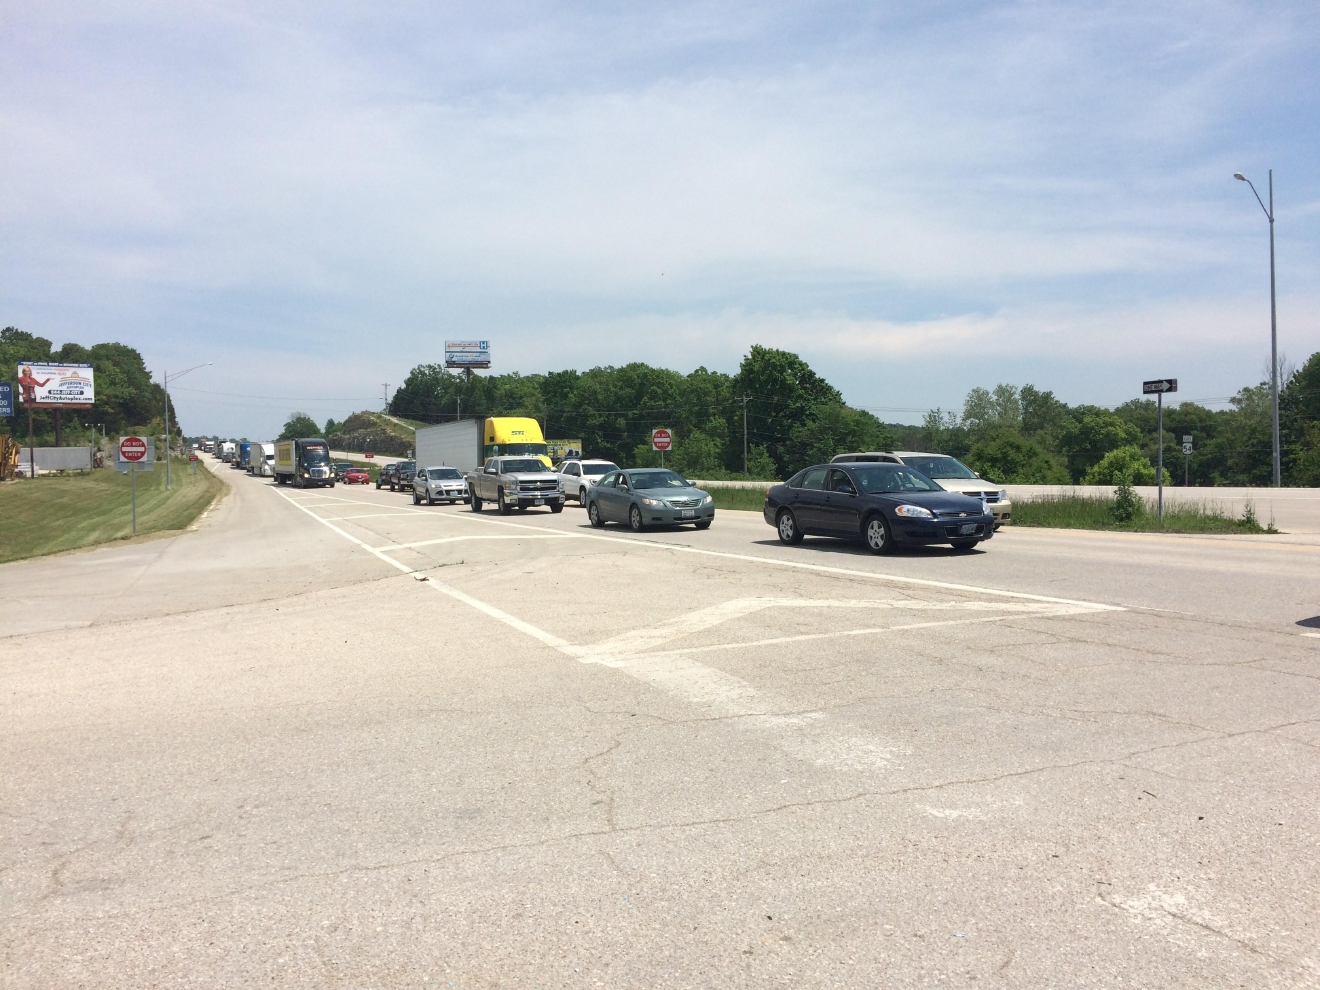 Crews working a serious accident just west of Jefferson City. The accident at around 12:30 p.m. near the intersection of U.S. 54 and Goller Road. KRCG 13 photo.